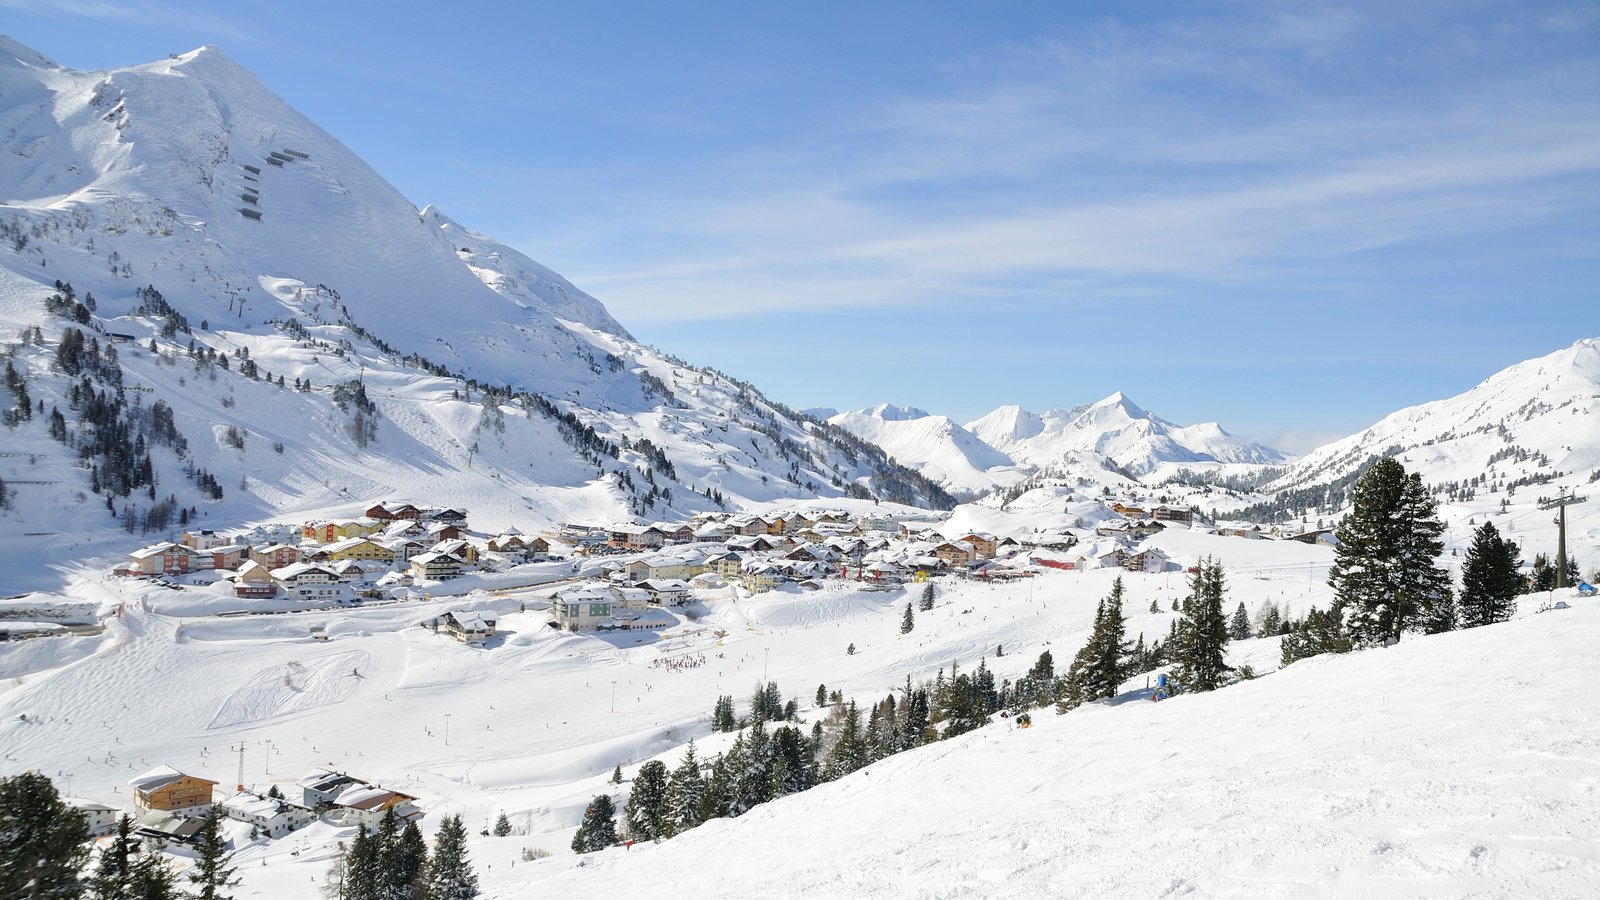 Obertauern showing snow, mountains and a small town or village